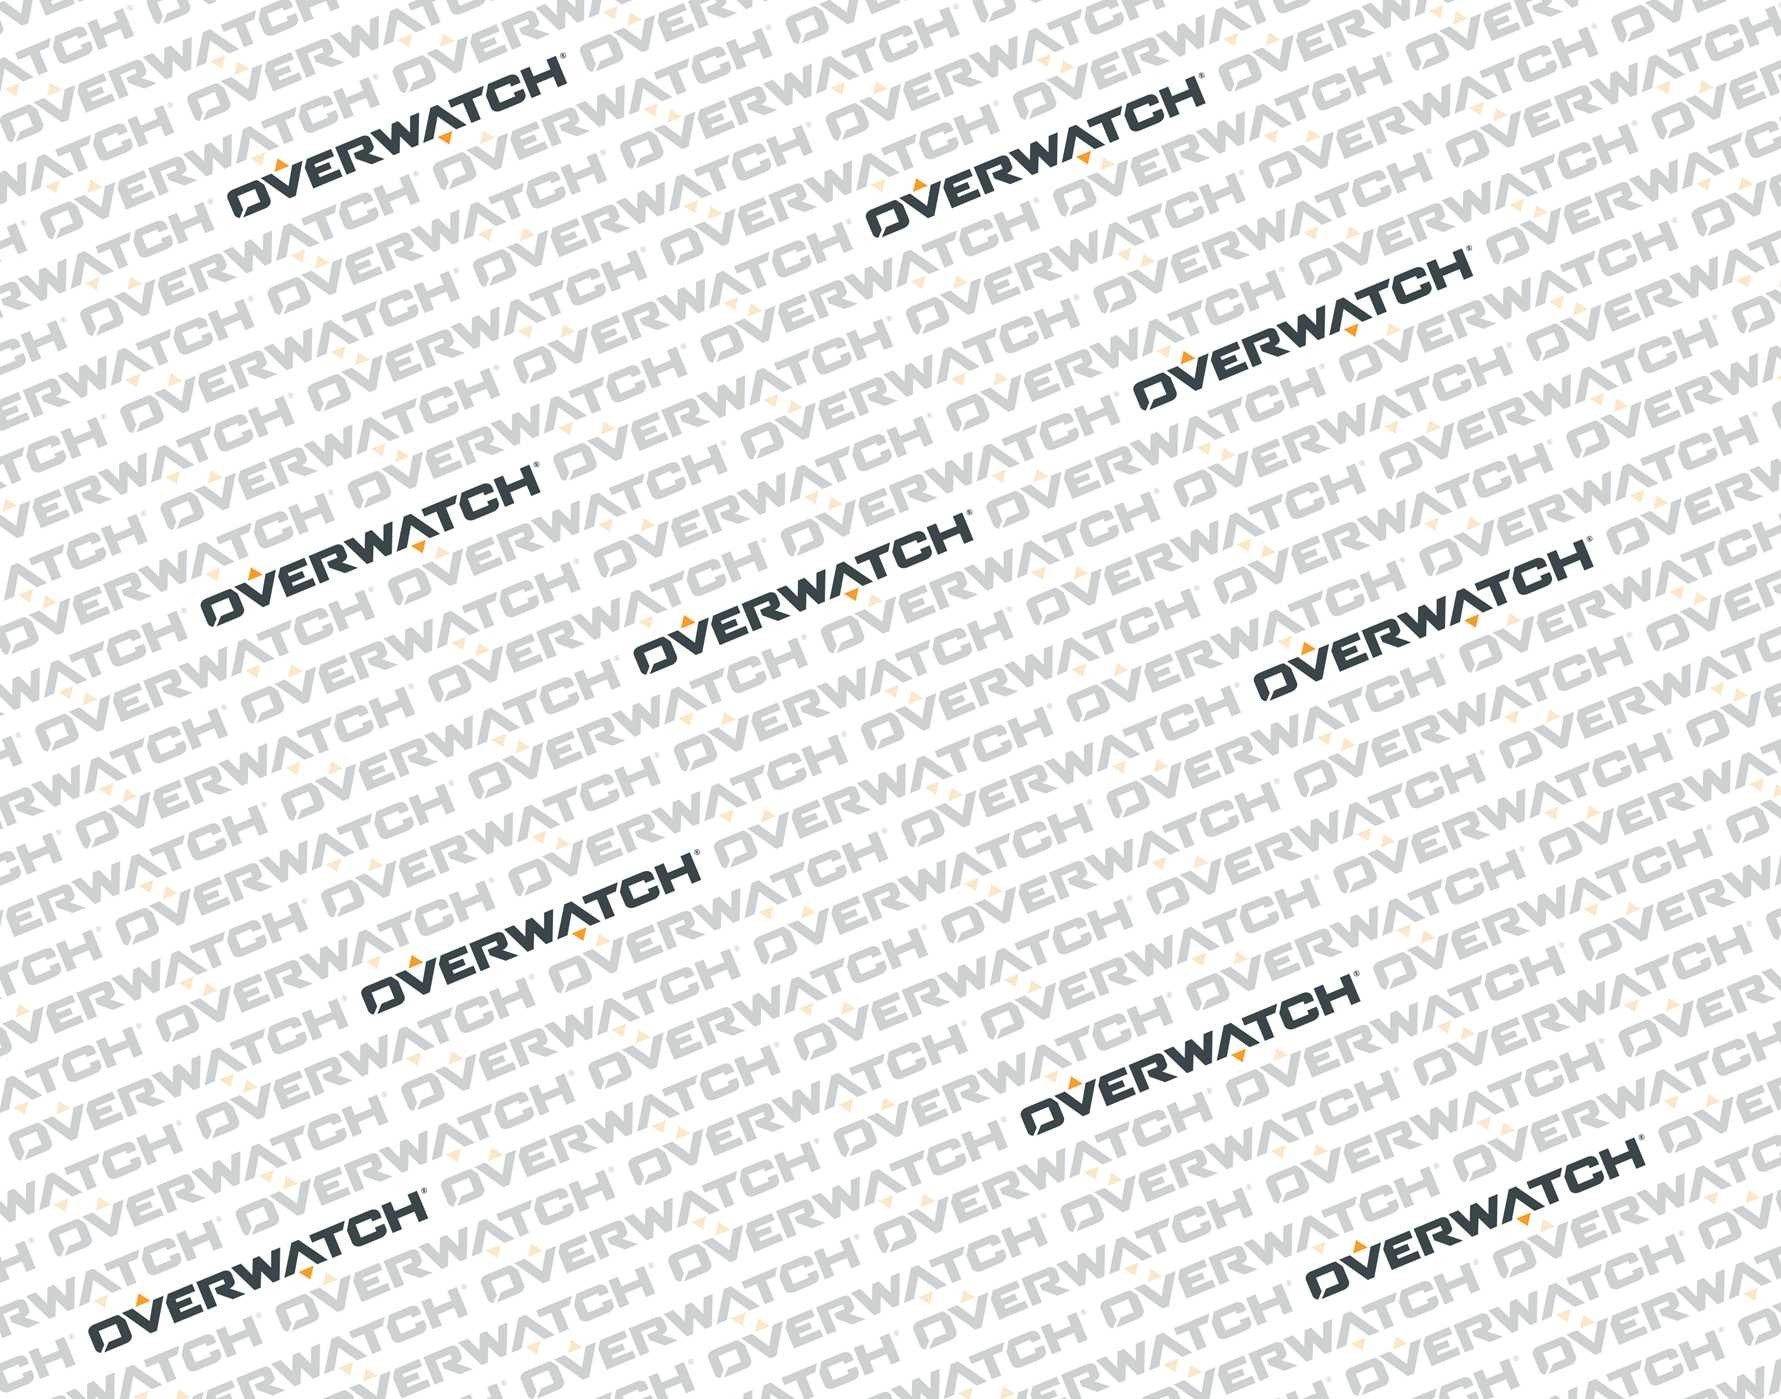 Overwatch hardcover ruled journal with pen 9781683835387.in03